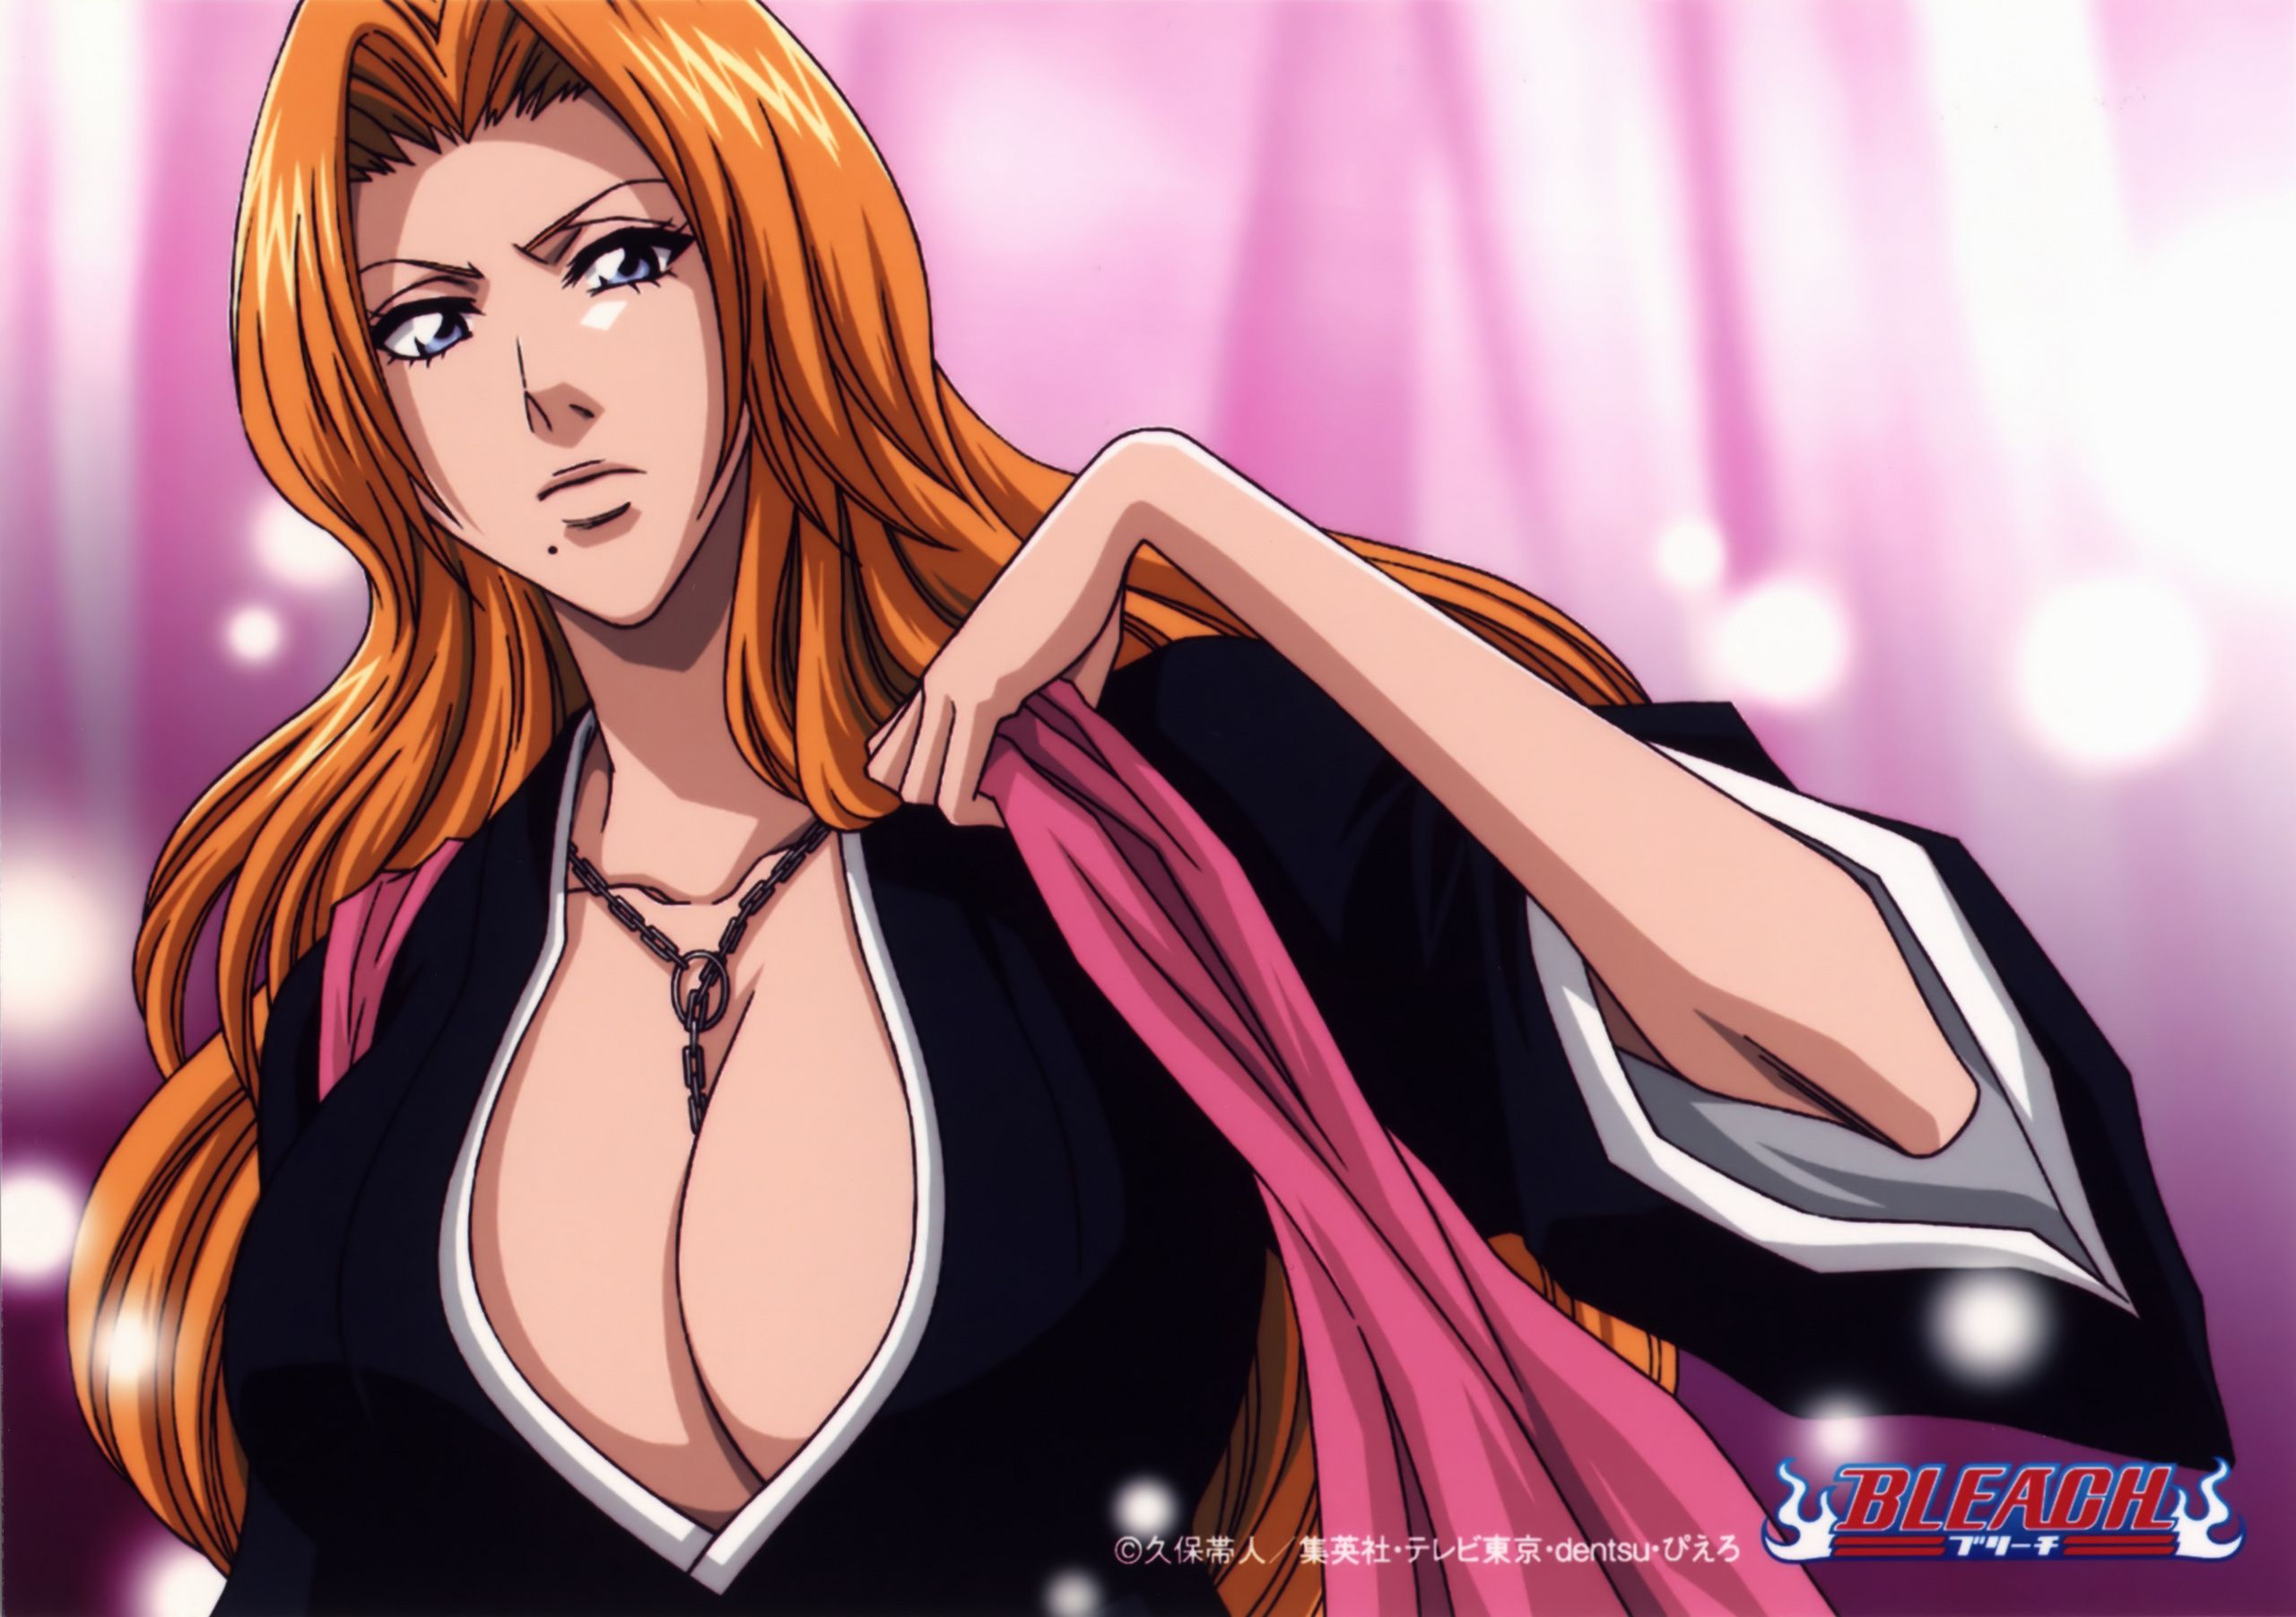 Artificial girl 3 rangiku download nsfw woman